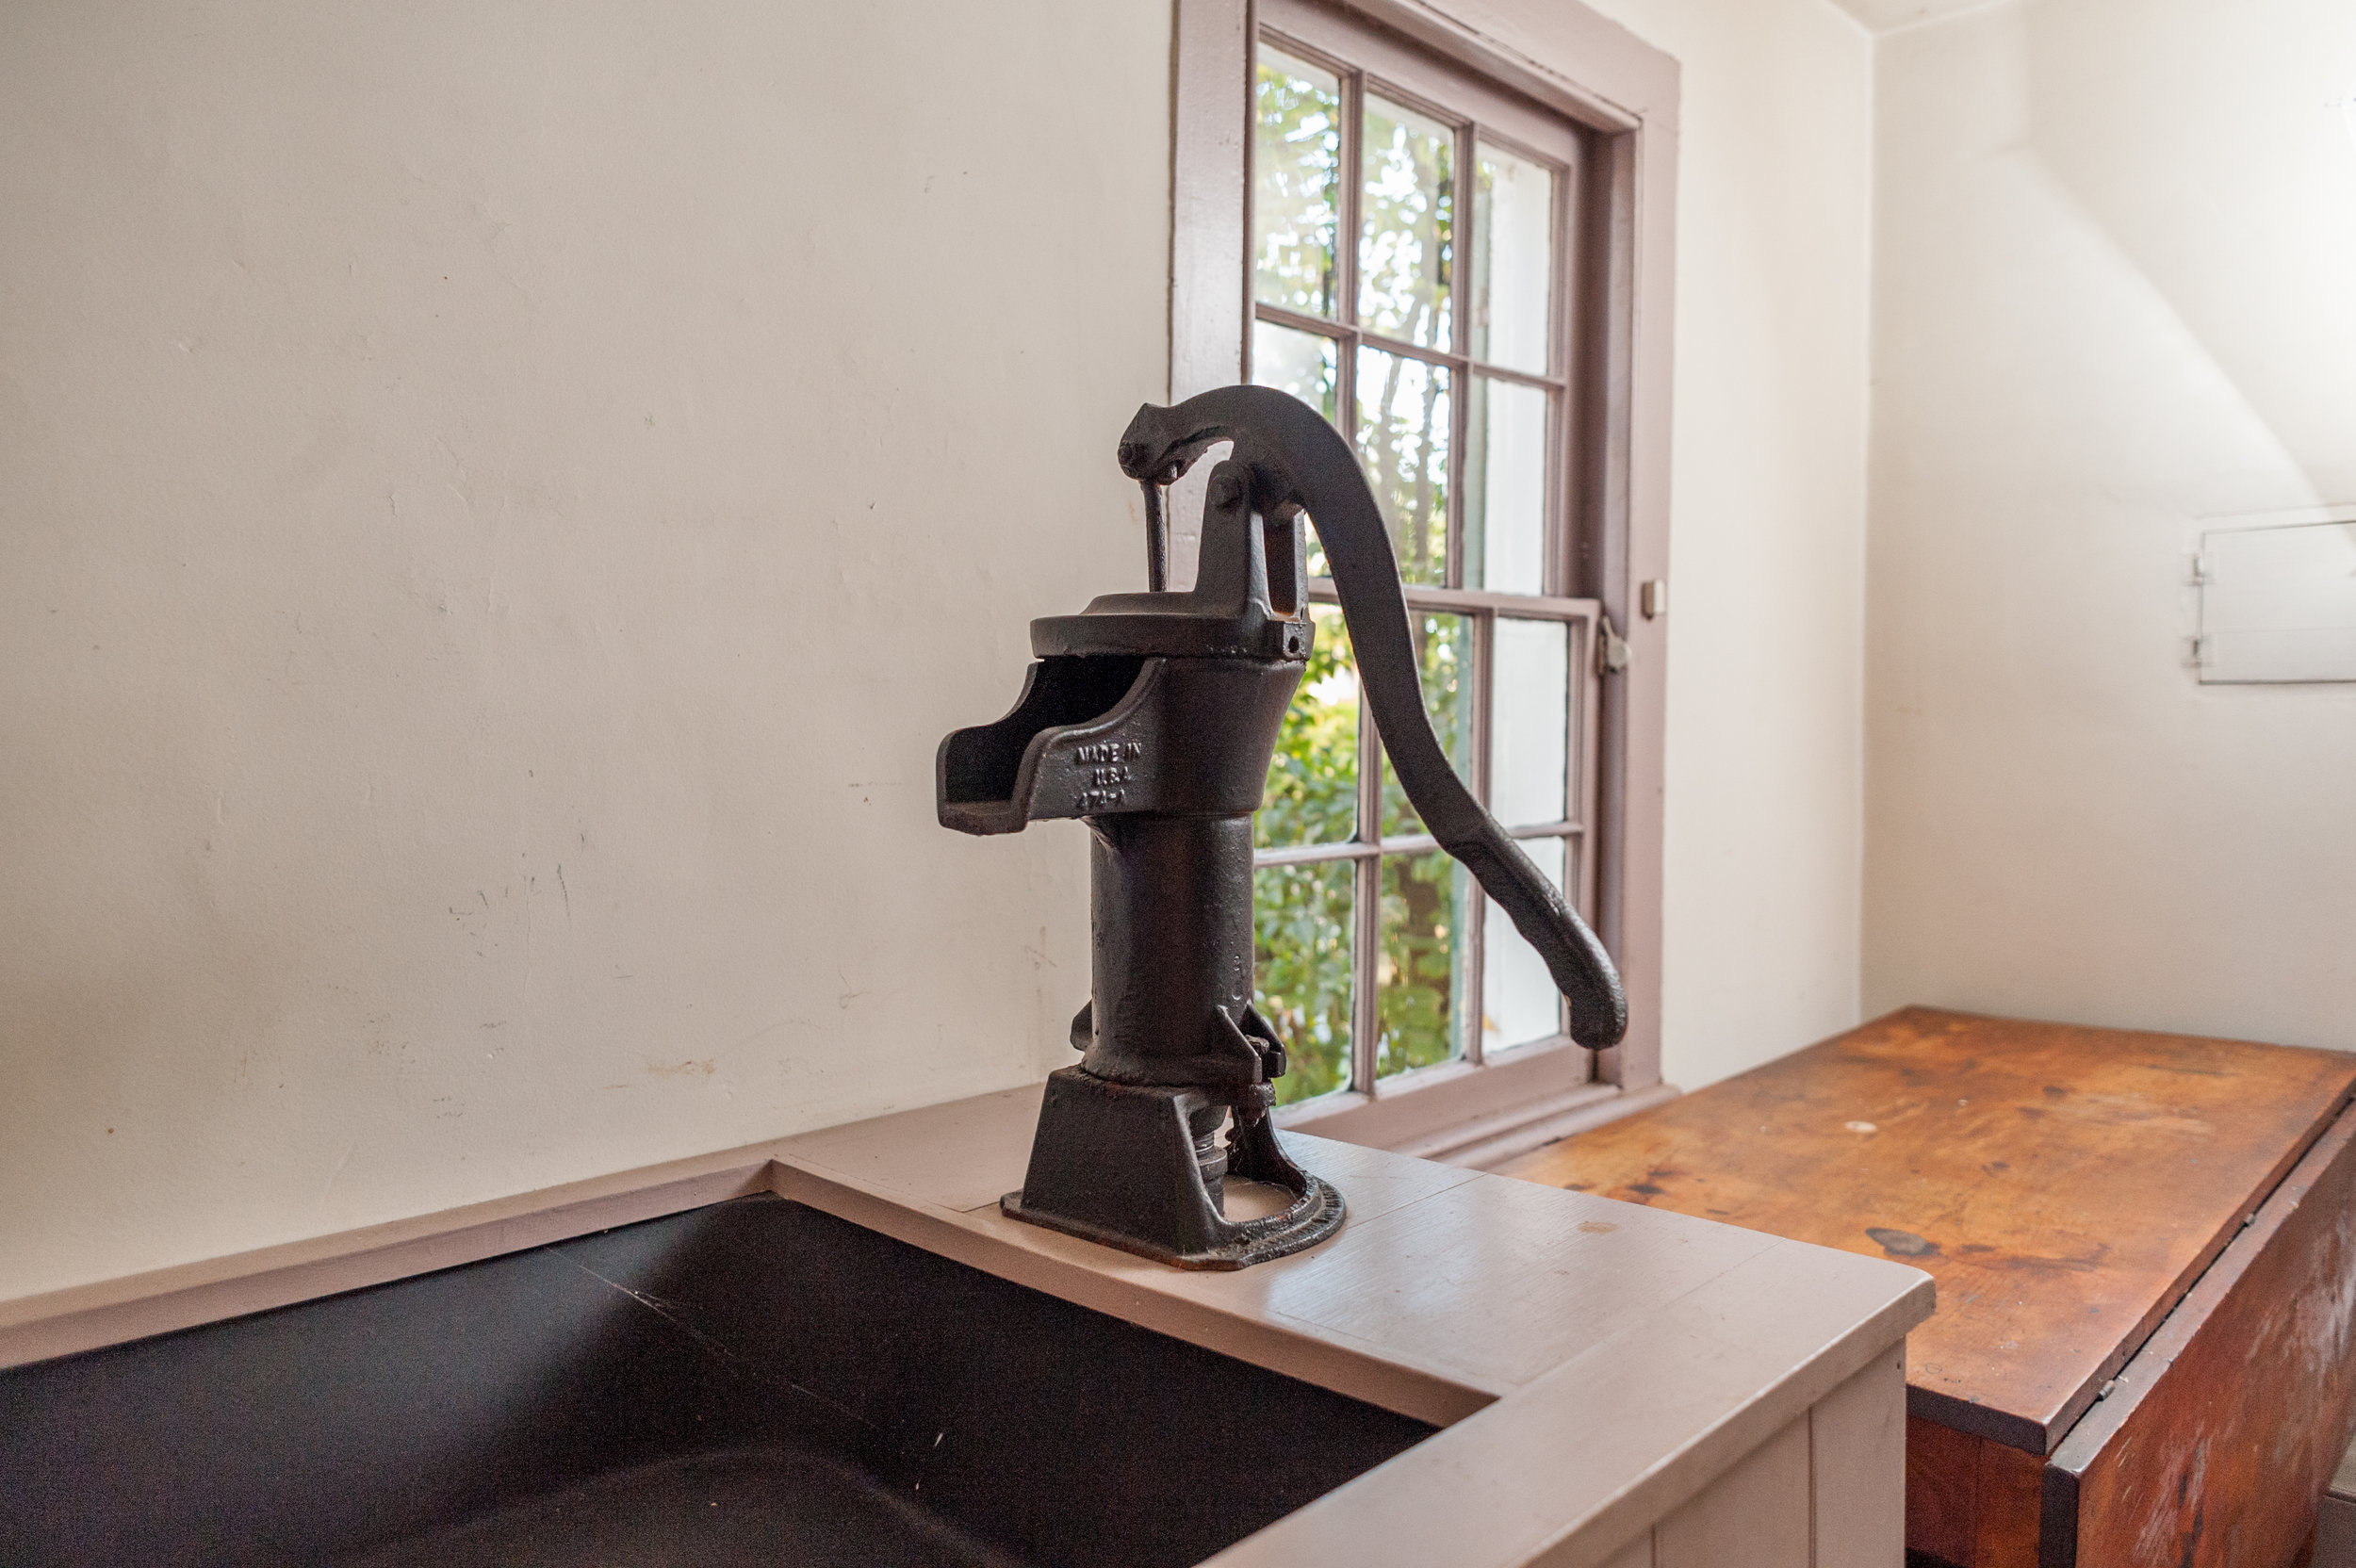 After the well was dug, water could finally be pumped directly into the kitchen instead of being carried from the Bronx River.